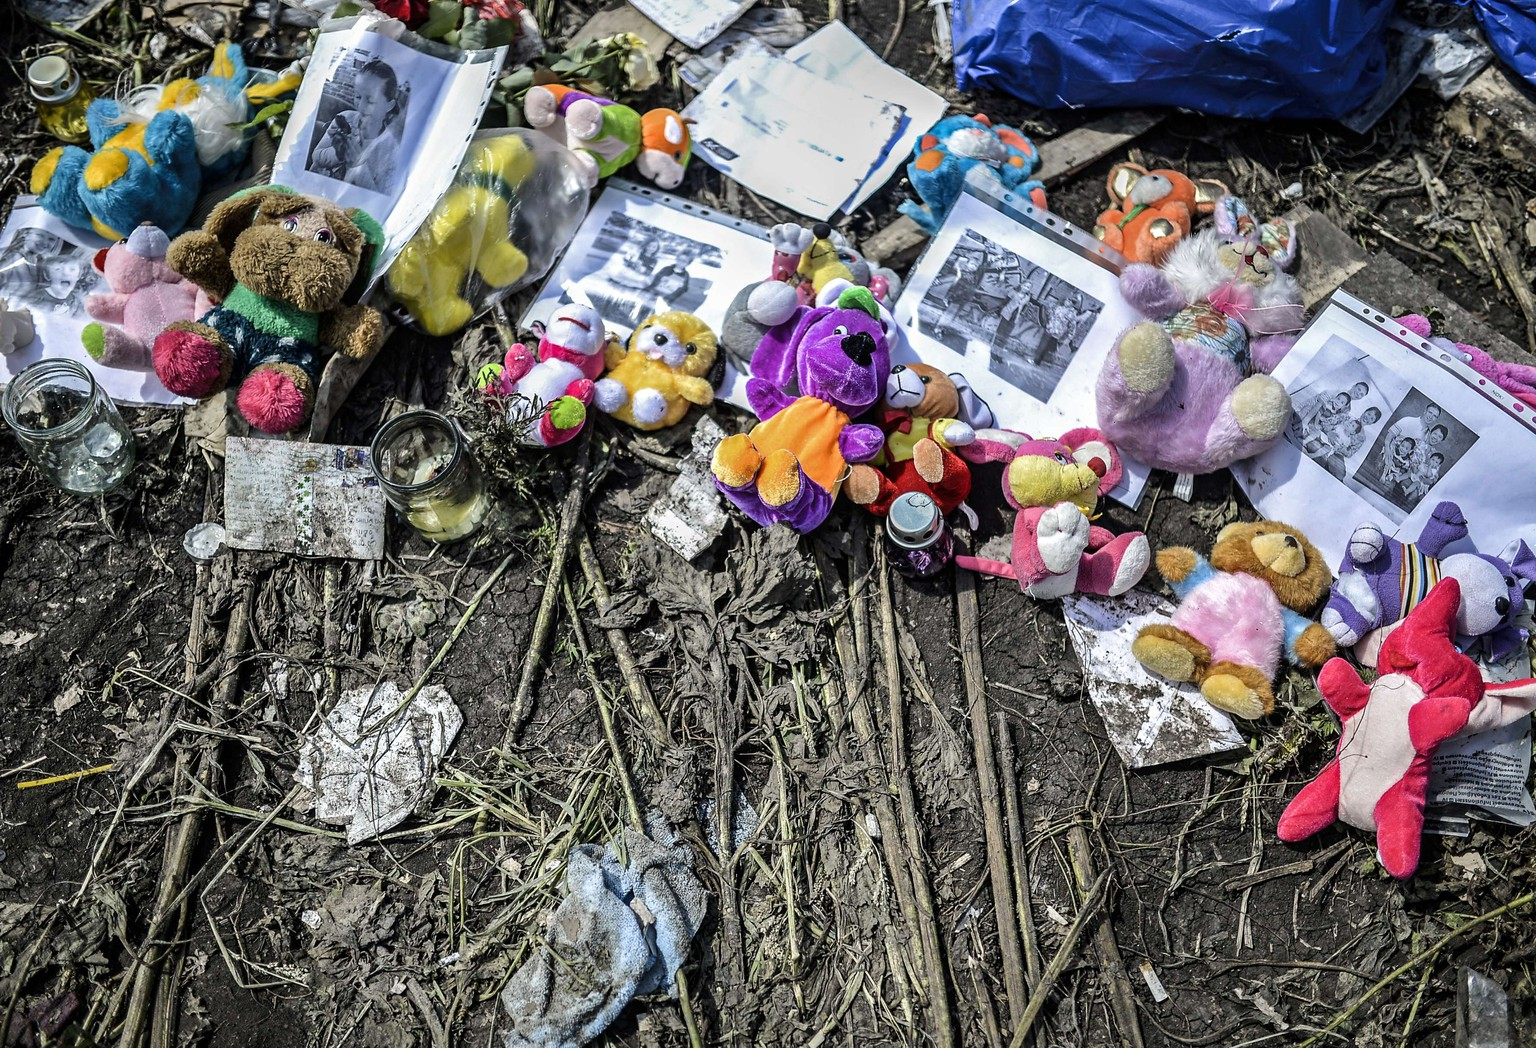 Soft toys and pictures are seen amongst the wreckage of the Malaysia Airlines flight MH17 near the village of Grabove, in the region of Donetsk on July 20, 2014. The missile system used to shoot down a Malaysian airliner was handed to pro-Russian separatists in Ukraine by Moscow, the top US diplomat said Sunday. Outraged world leaders have demanded Russia's immediate cooperation in a prompt and independent probe into the shooting down on July 17 of flight MH17 with 298 people on board. AFP PHOTO/ BULENT KILIC